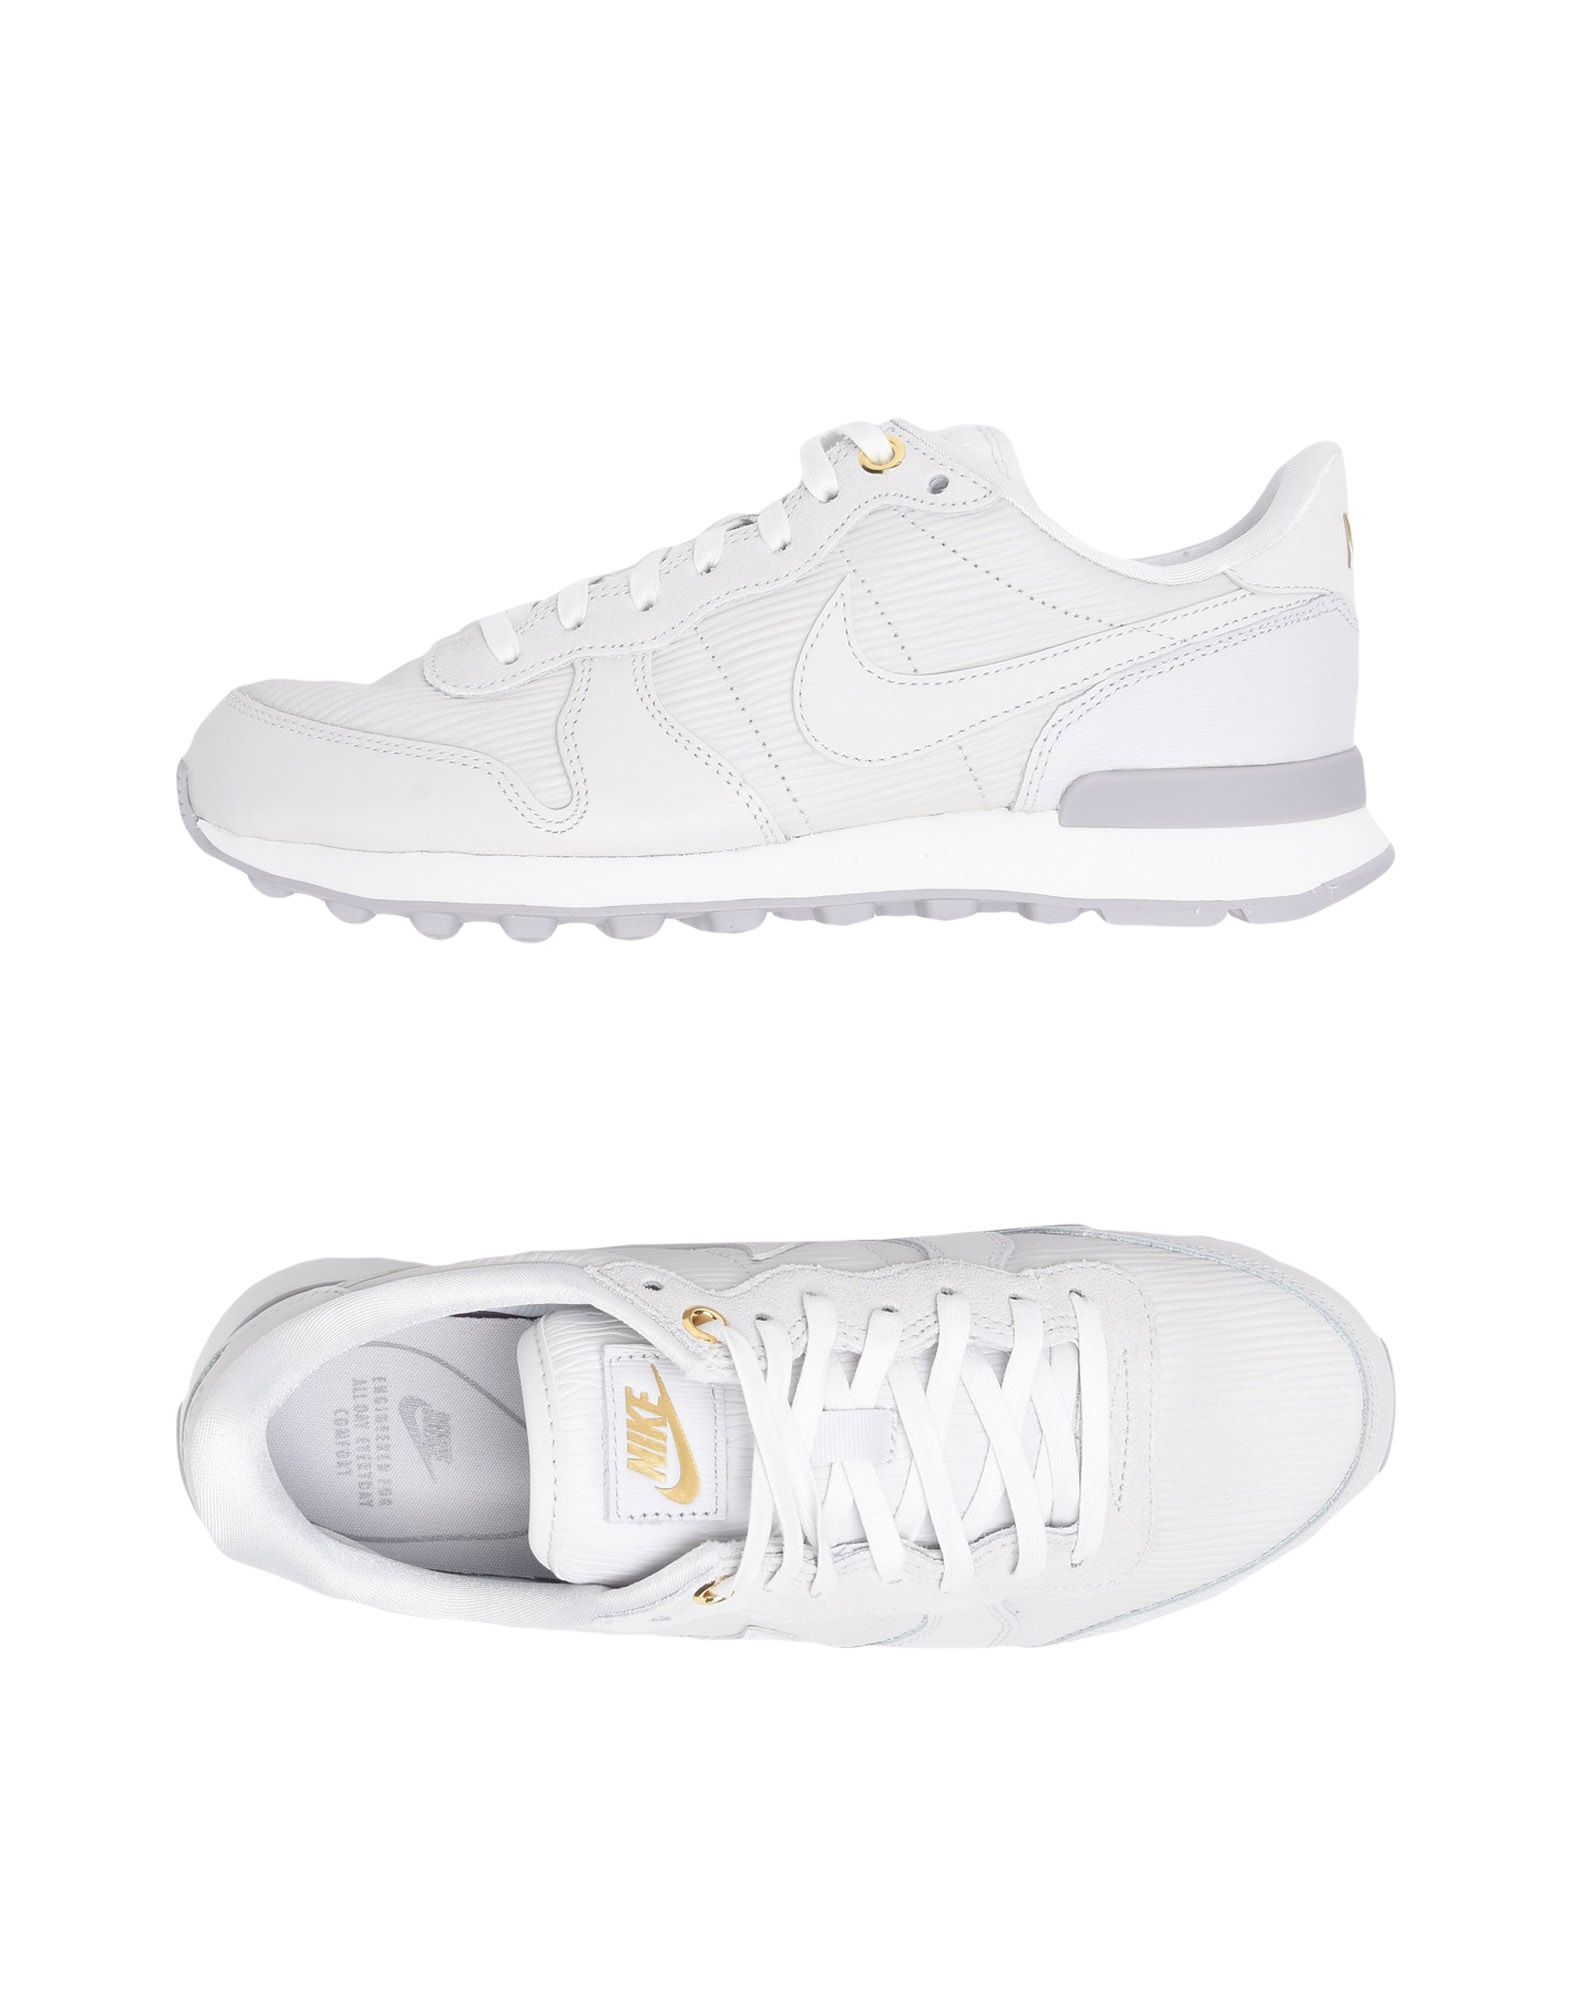 Sneakers Nike Internationalist Premium - Femme - Sneakers Nike sur